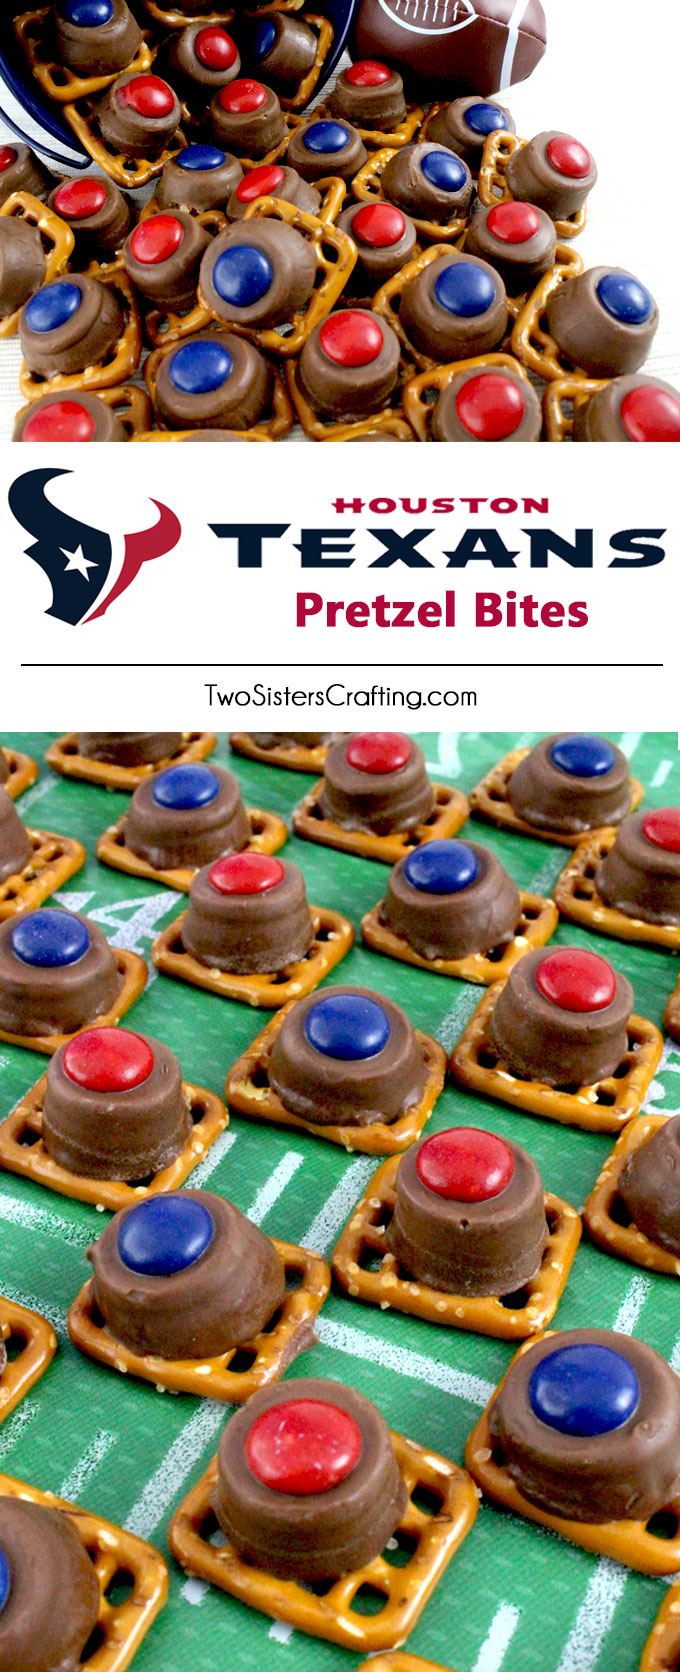 Our easy to make Houston Texans Pretzel Bites are yummy bites of sweet and salty Football Game Day goodness. They are perfect as a little extra treat at a NFL playoff party, a Super Bowl party or as a special dessert for the Houston Texans fan in your life. Follow us for more fun Super Bowl Food Ideas.